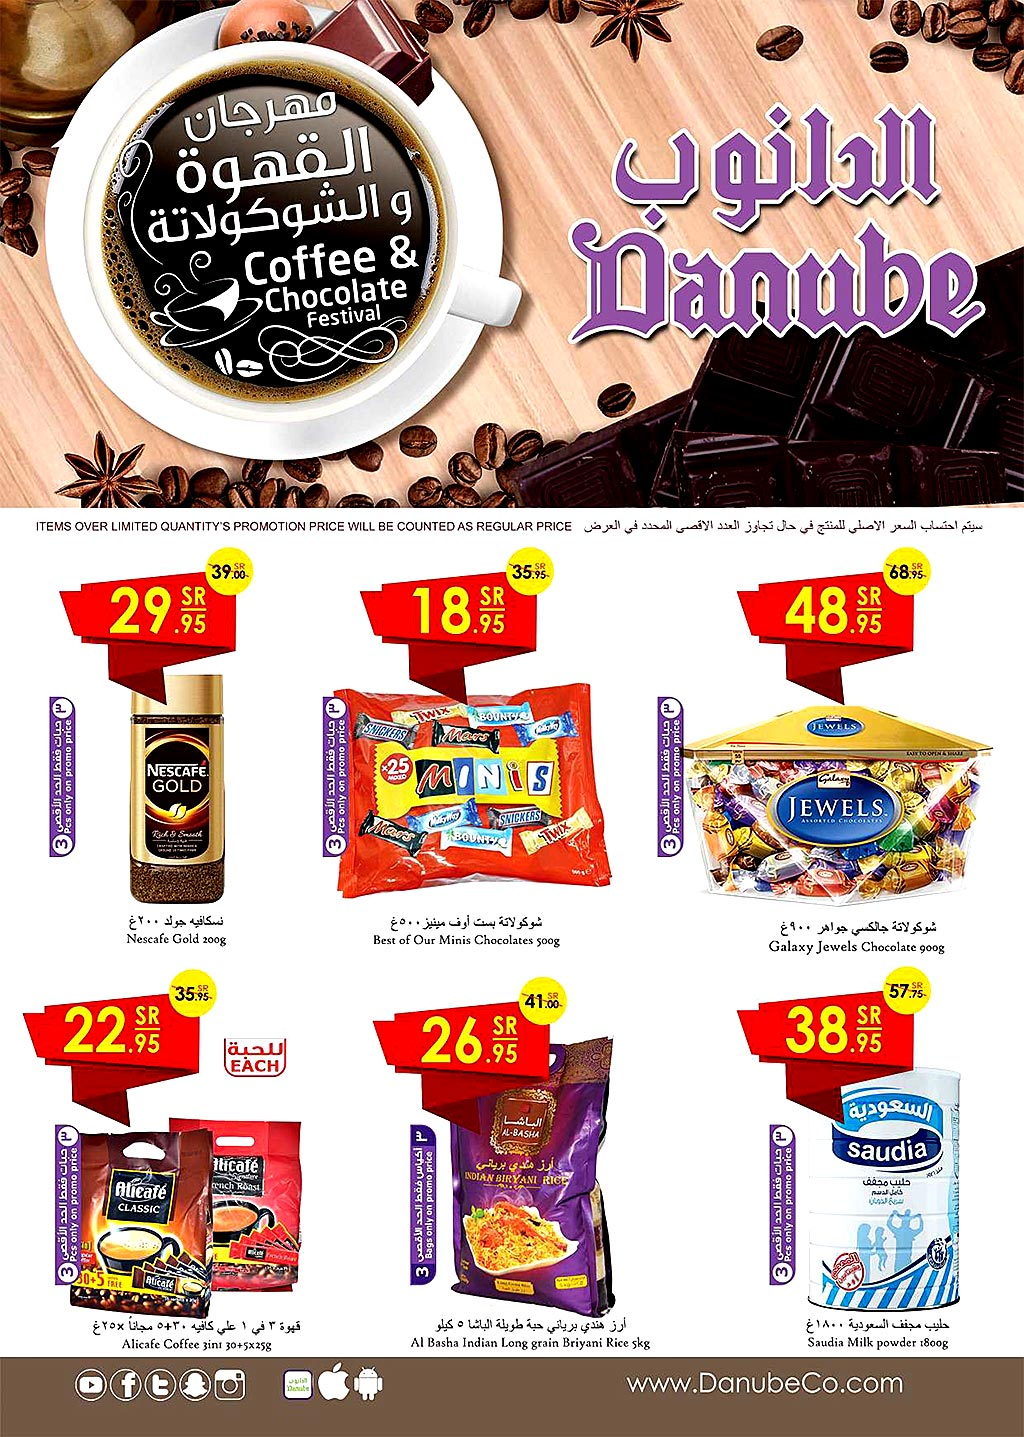 danube offers from 4mar to 10mar 2020 page number 1 عروض الدانوب من 4 مارس حتى 10 مارس 2020 صفحة رقم 1